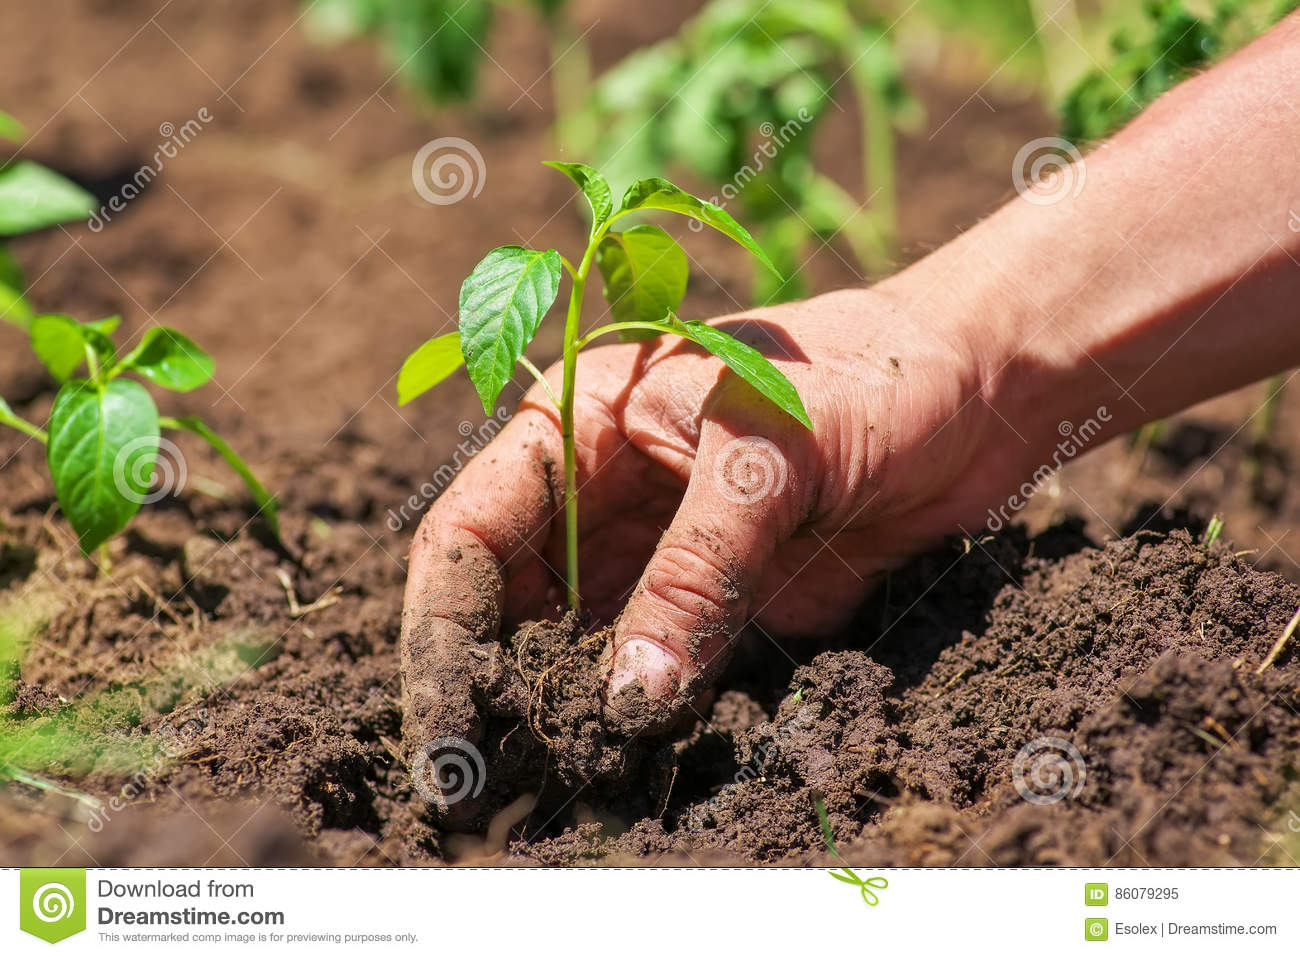 Dirty Male Hands And Ground Plant Stock Image - Image of branch ...